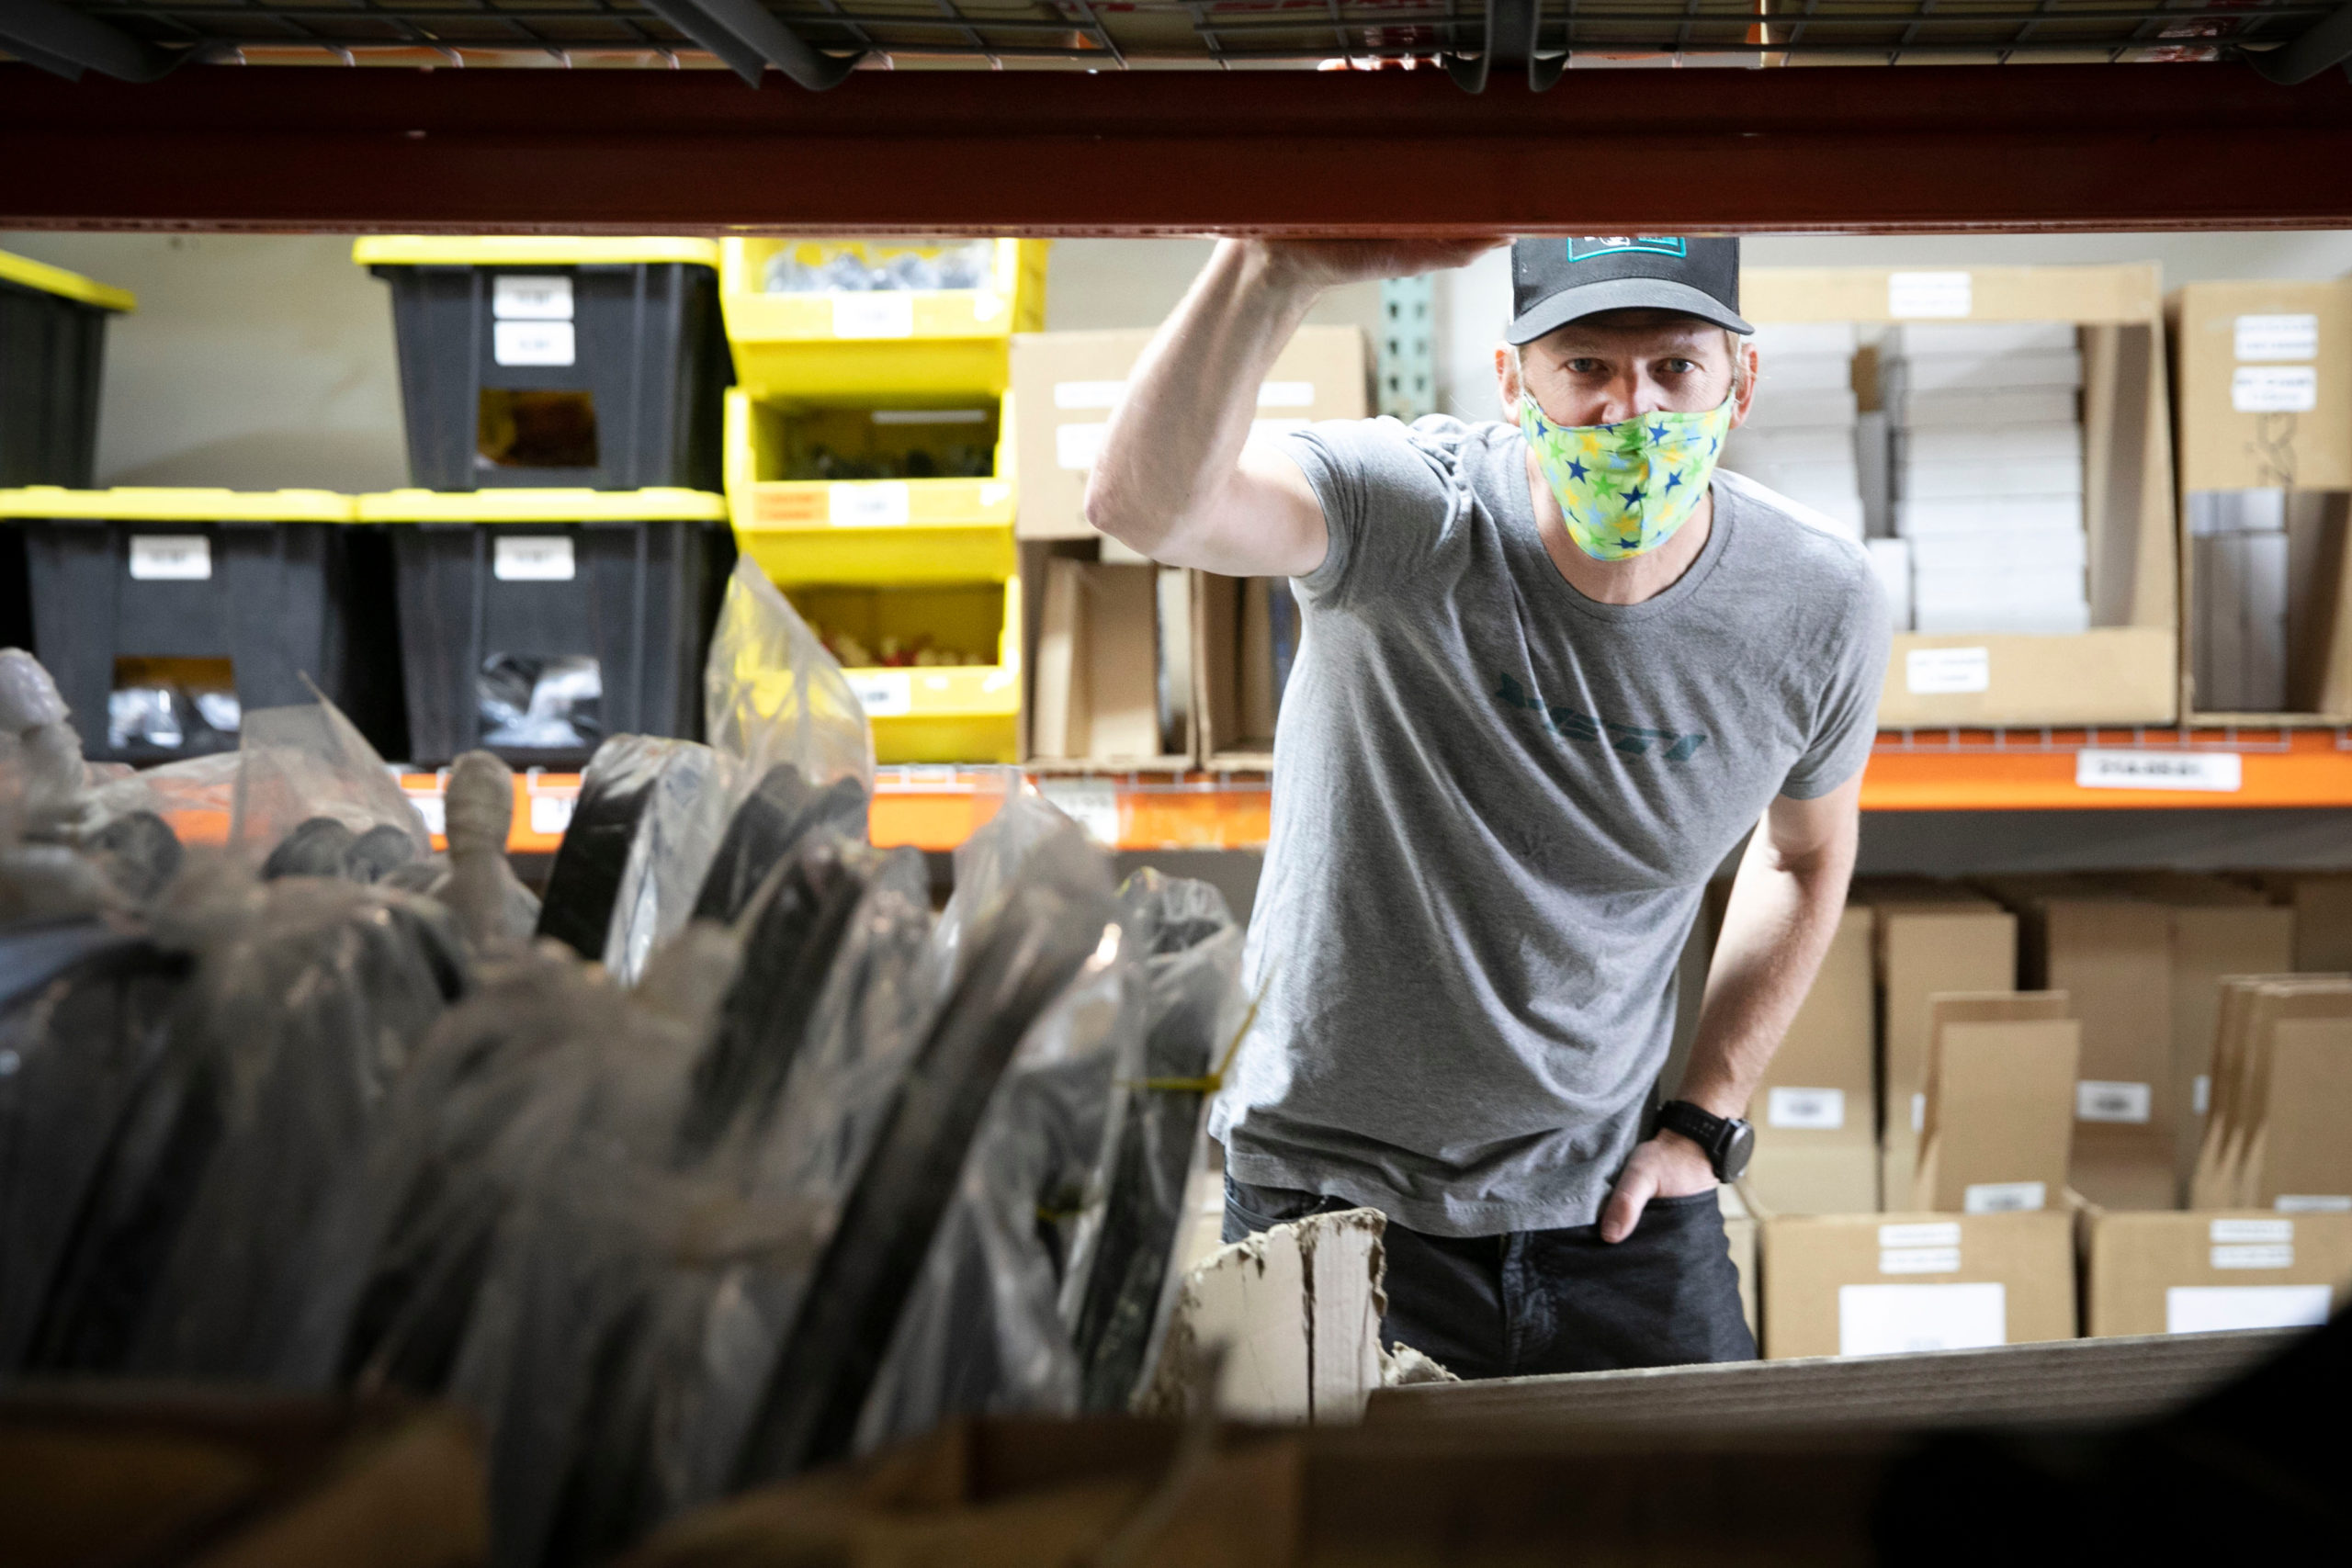 Yeti Cycles Retools To Make Face Shields For COVID-19 First Responders And Health Care Workers